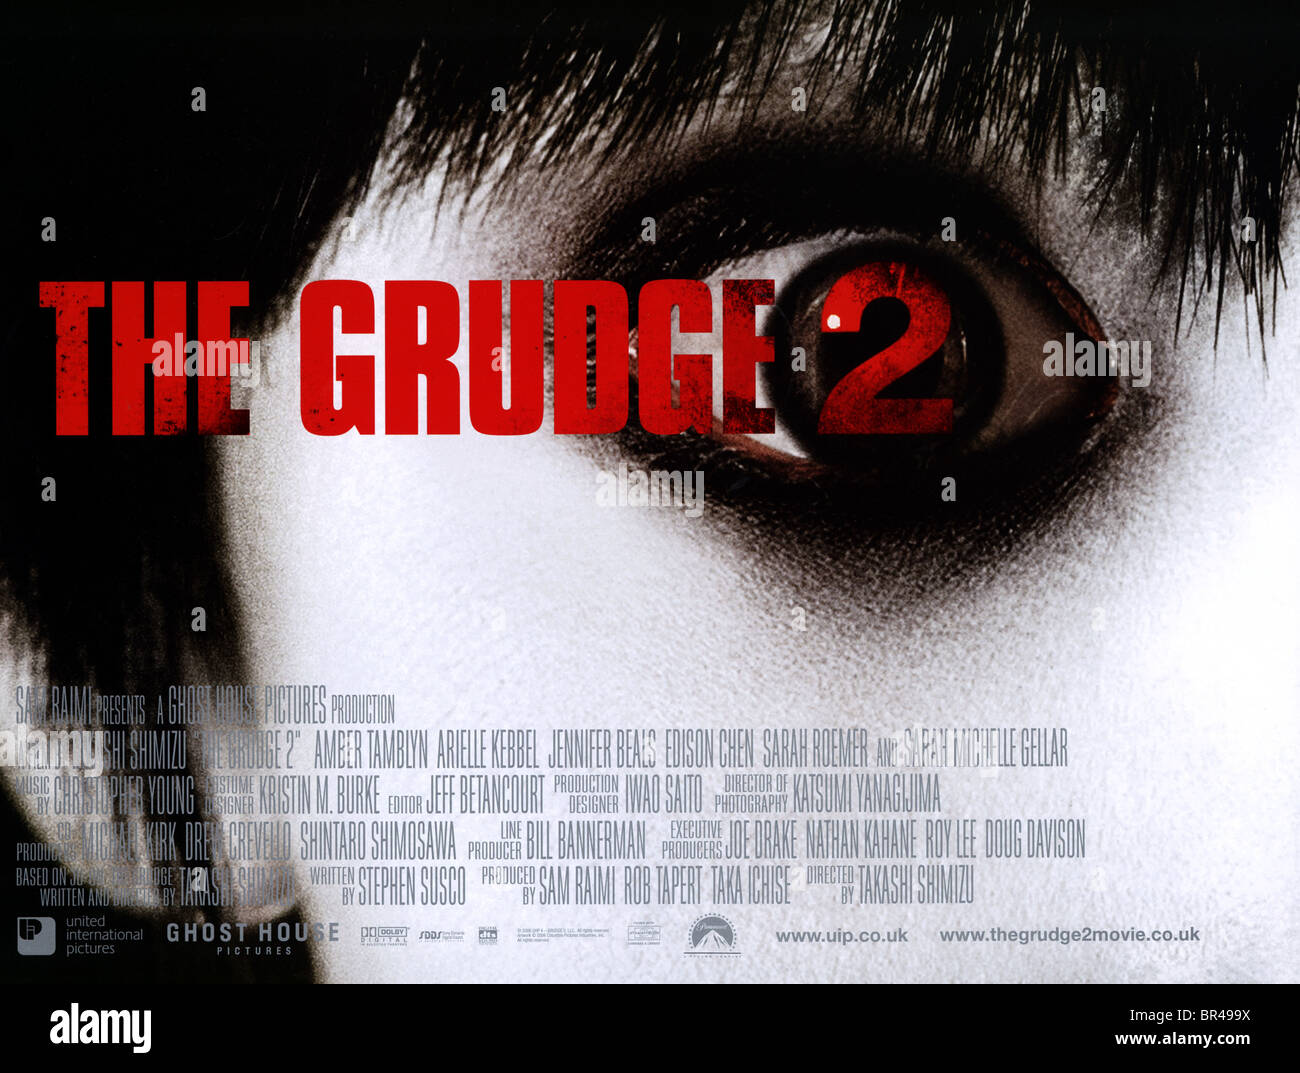 Movie Posters 2006: MOVIE POSTER THE GRUDGE 2 (2006 Stock Photo, Royalty Free